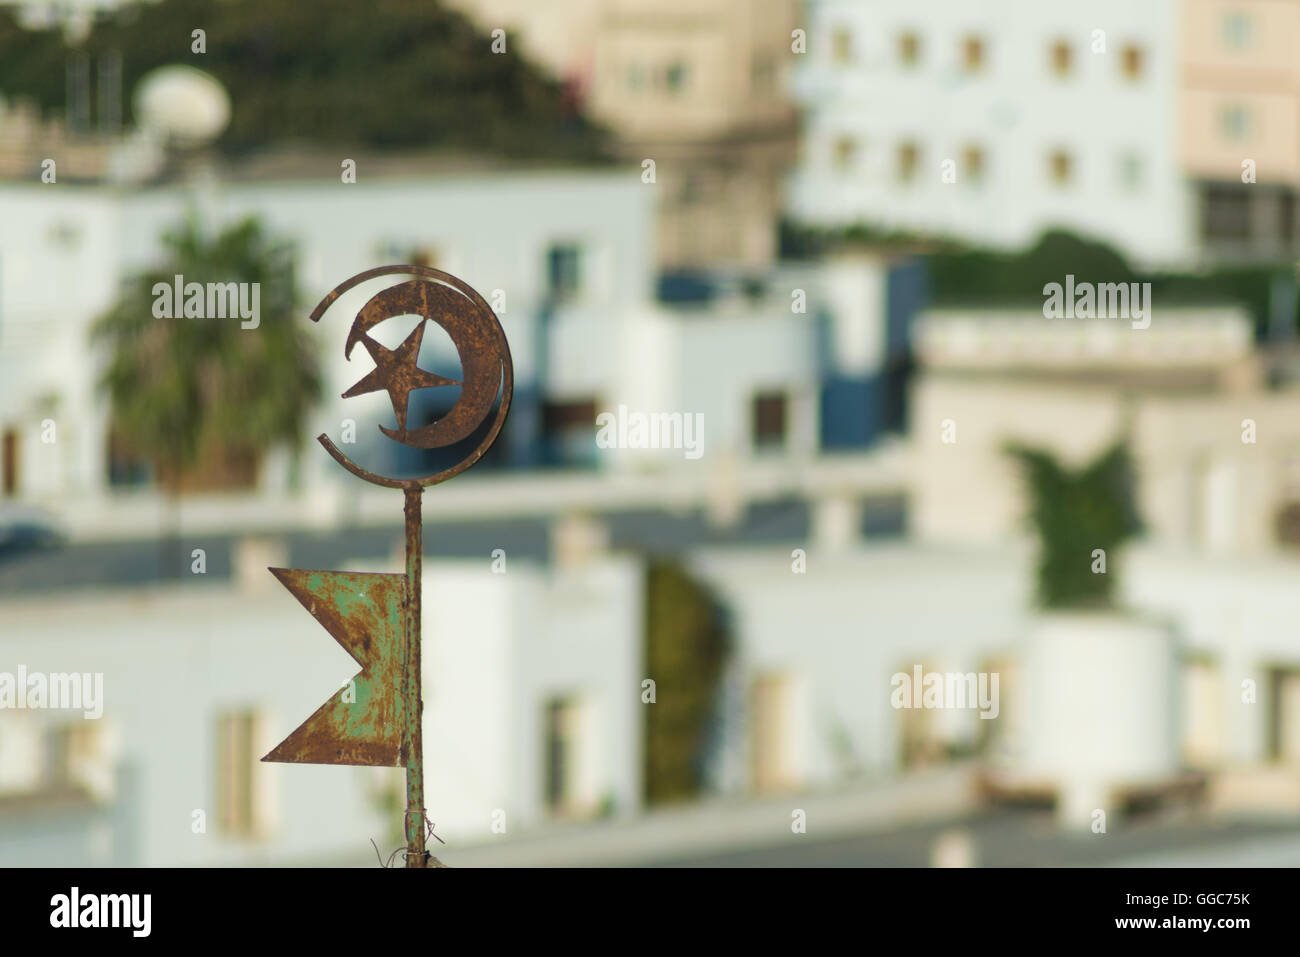 Symbol of Tunisia with Buildlings in Background - Stock Image